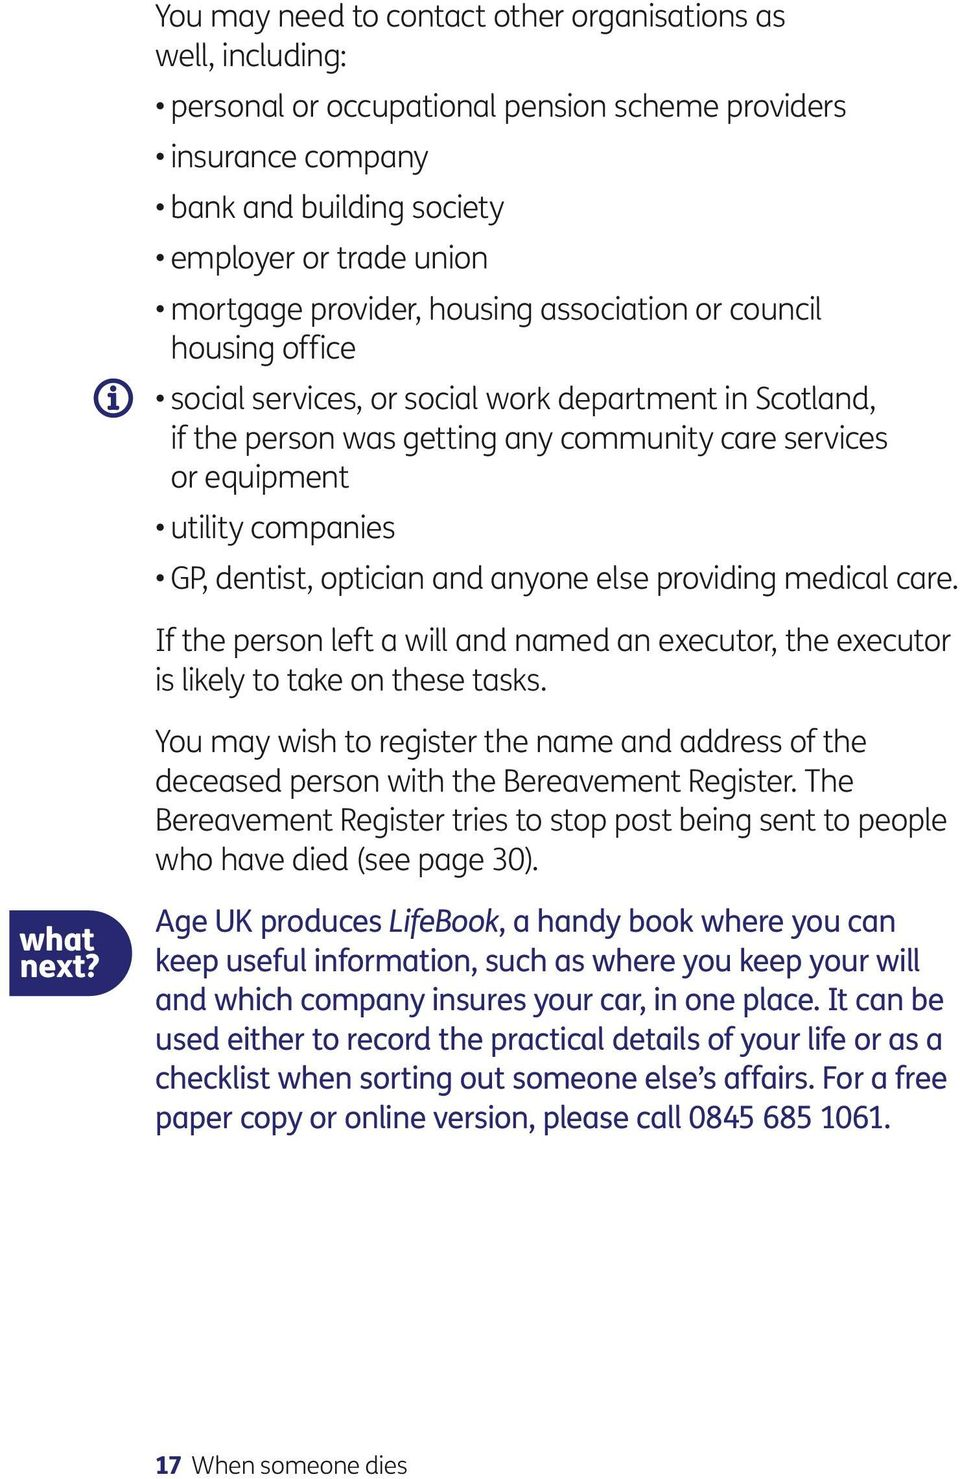 GP, dentist, optician and anyone else providing medical care. If the person left a will and named an executor, the executor is likely to take on these tasks.